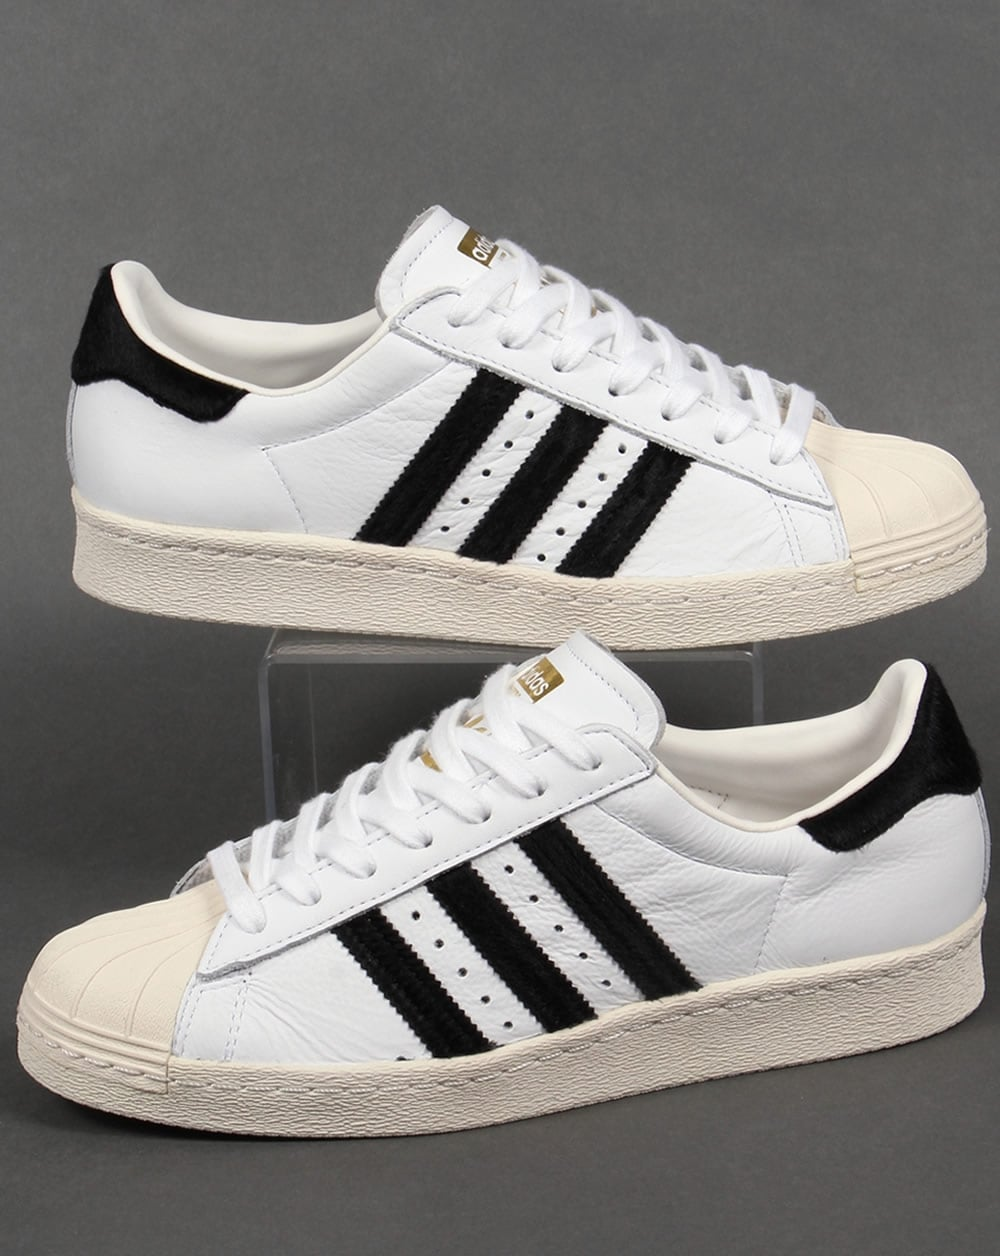 c9481fc6c51 adidas Trainers Adidas Superstar 80s Trainers White Black Gold